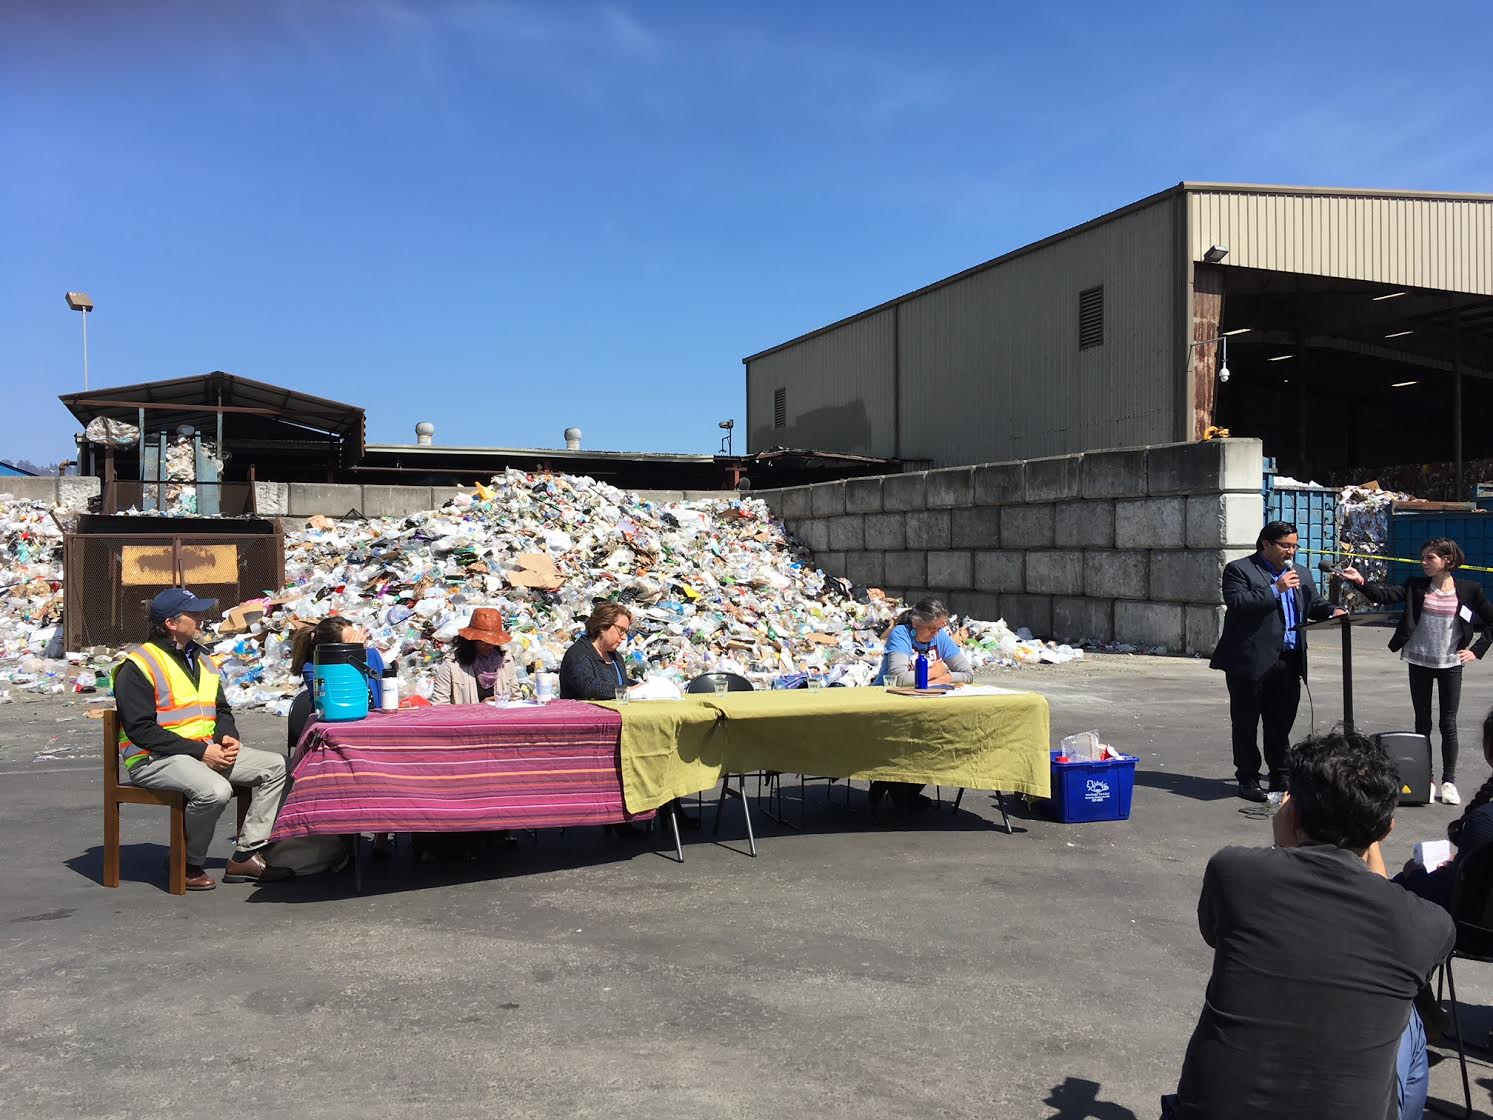 At a press conference held by Ecology Center, a day's worth of single-use plastic trash is visible.